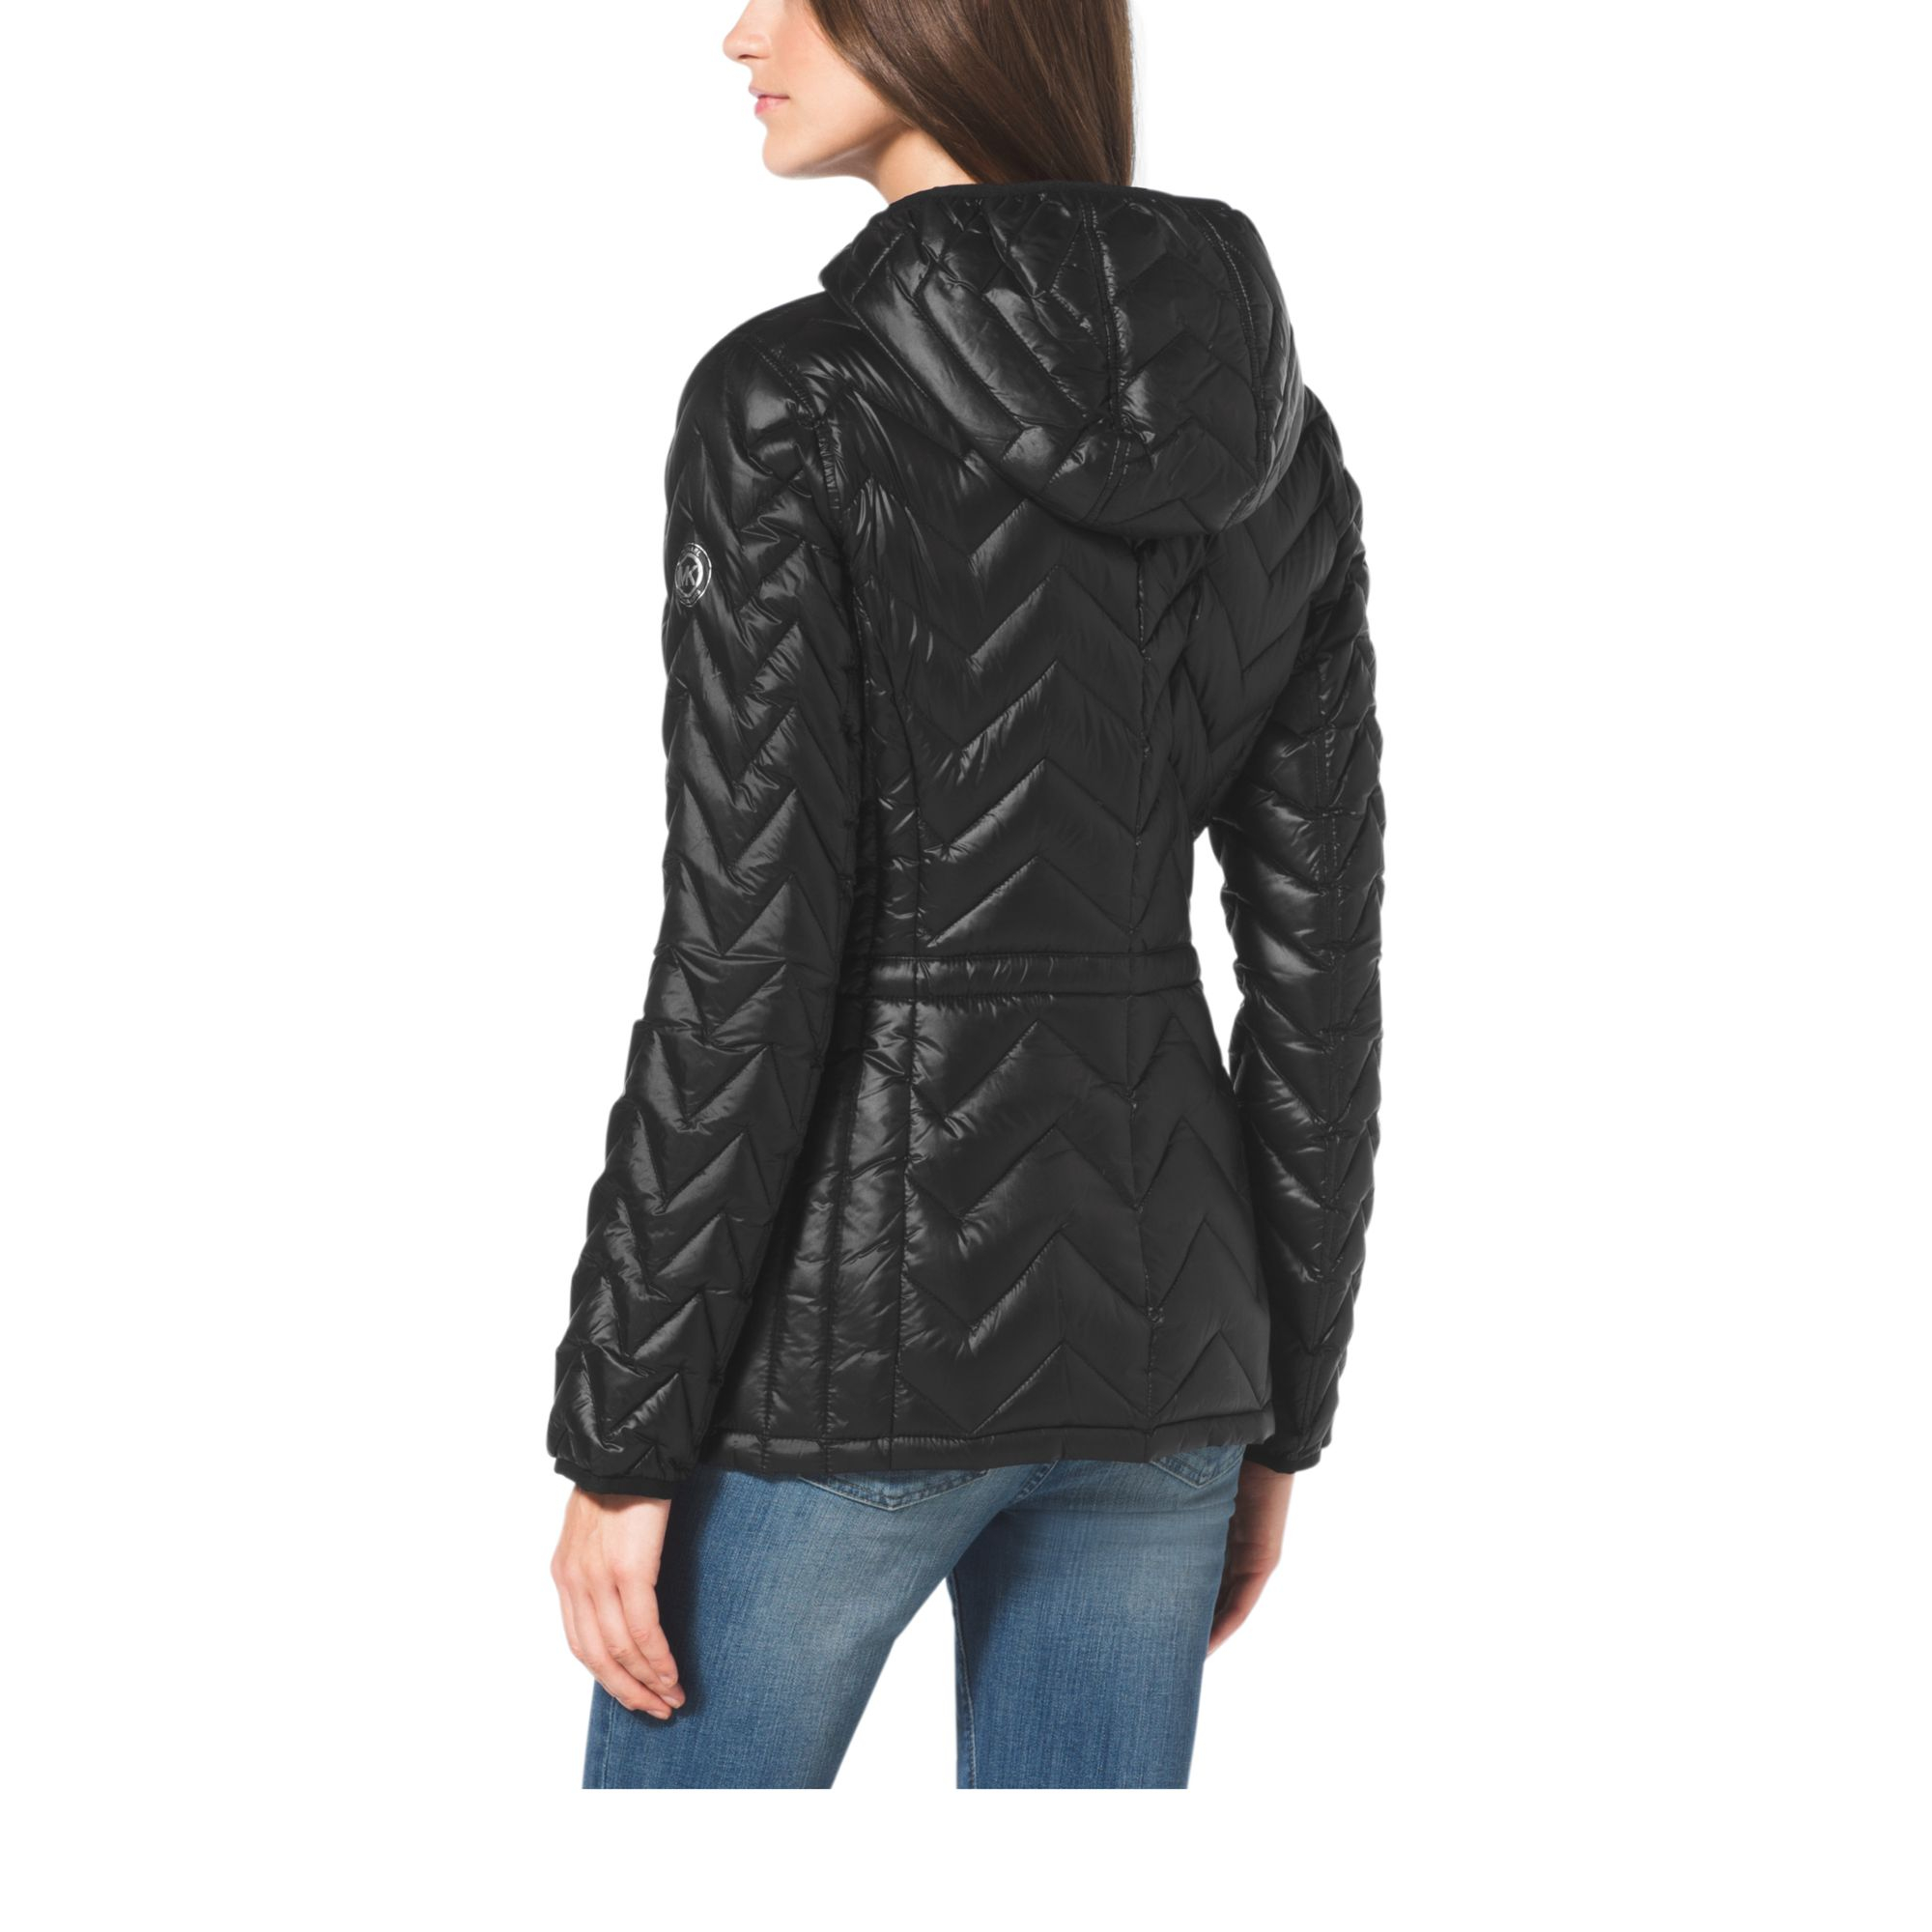 Lyst Michael Kors Chevron Quilted Nylon Jacket in Black